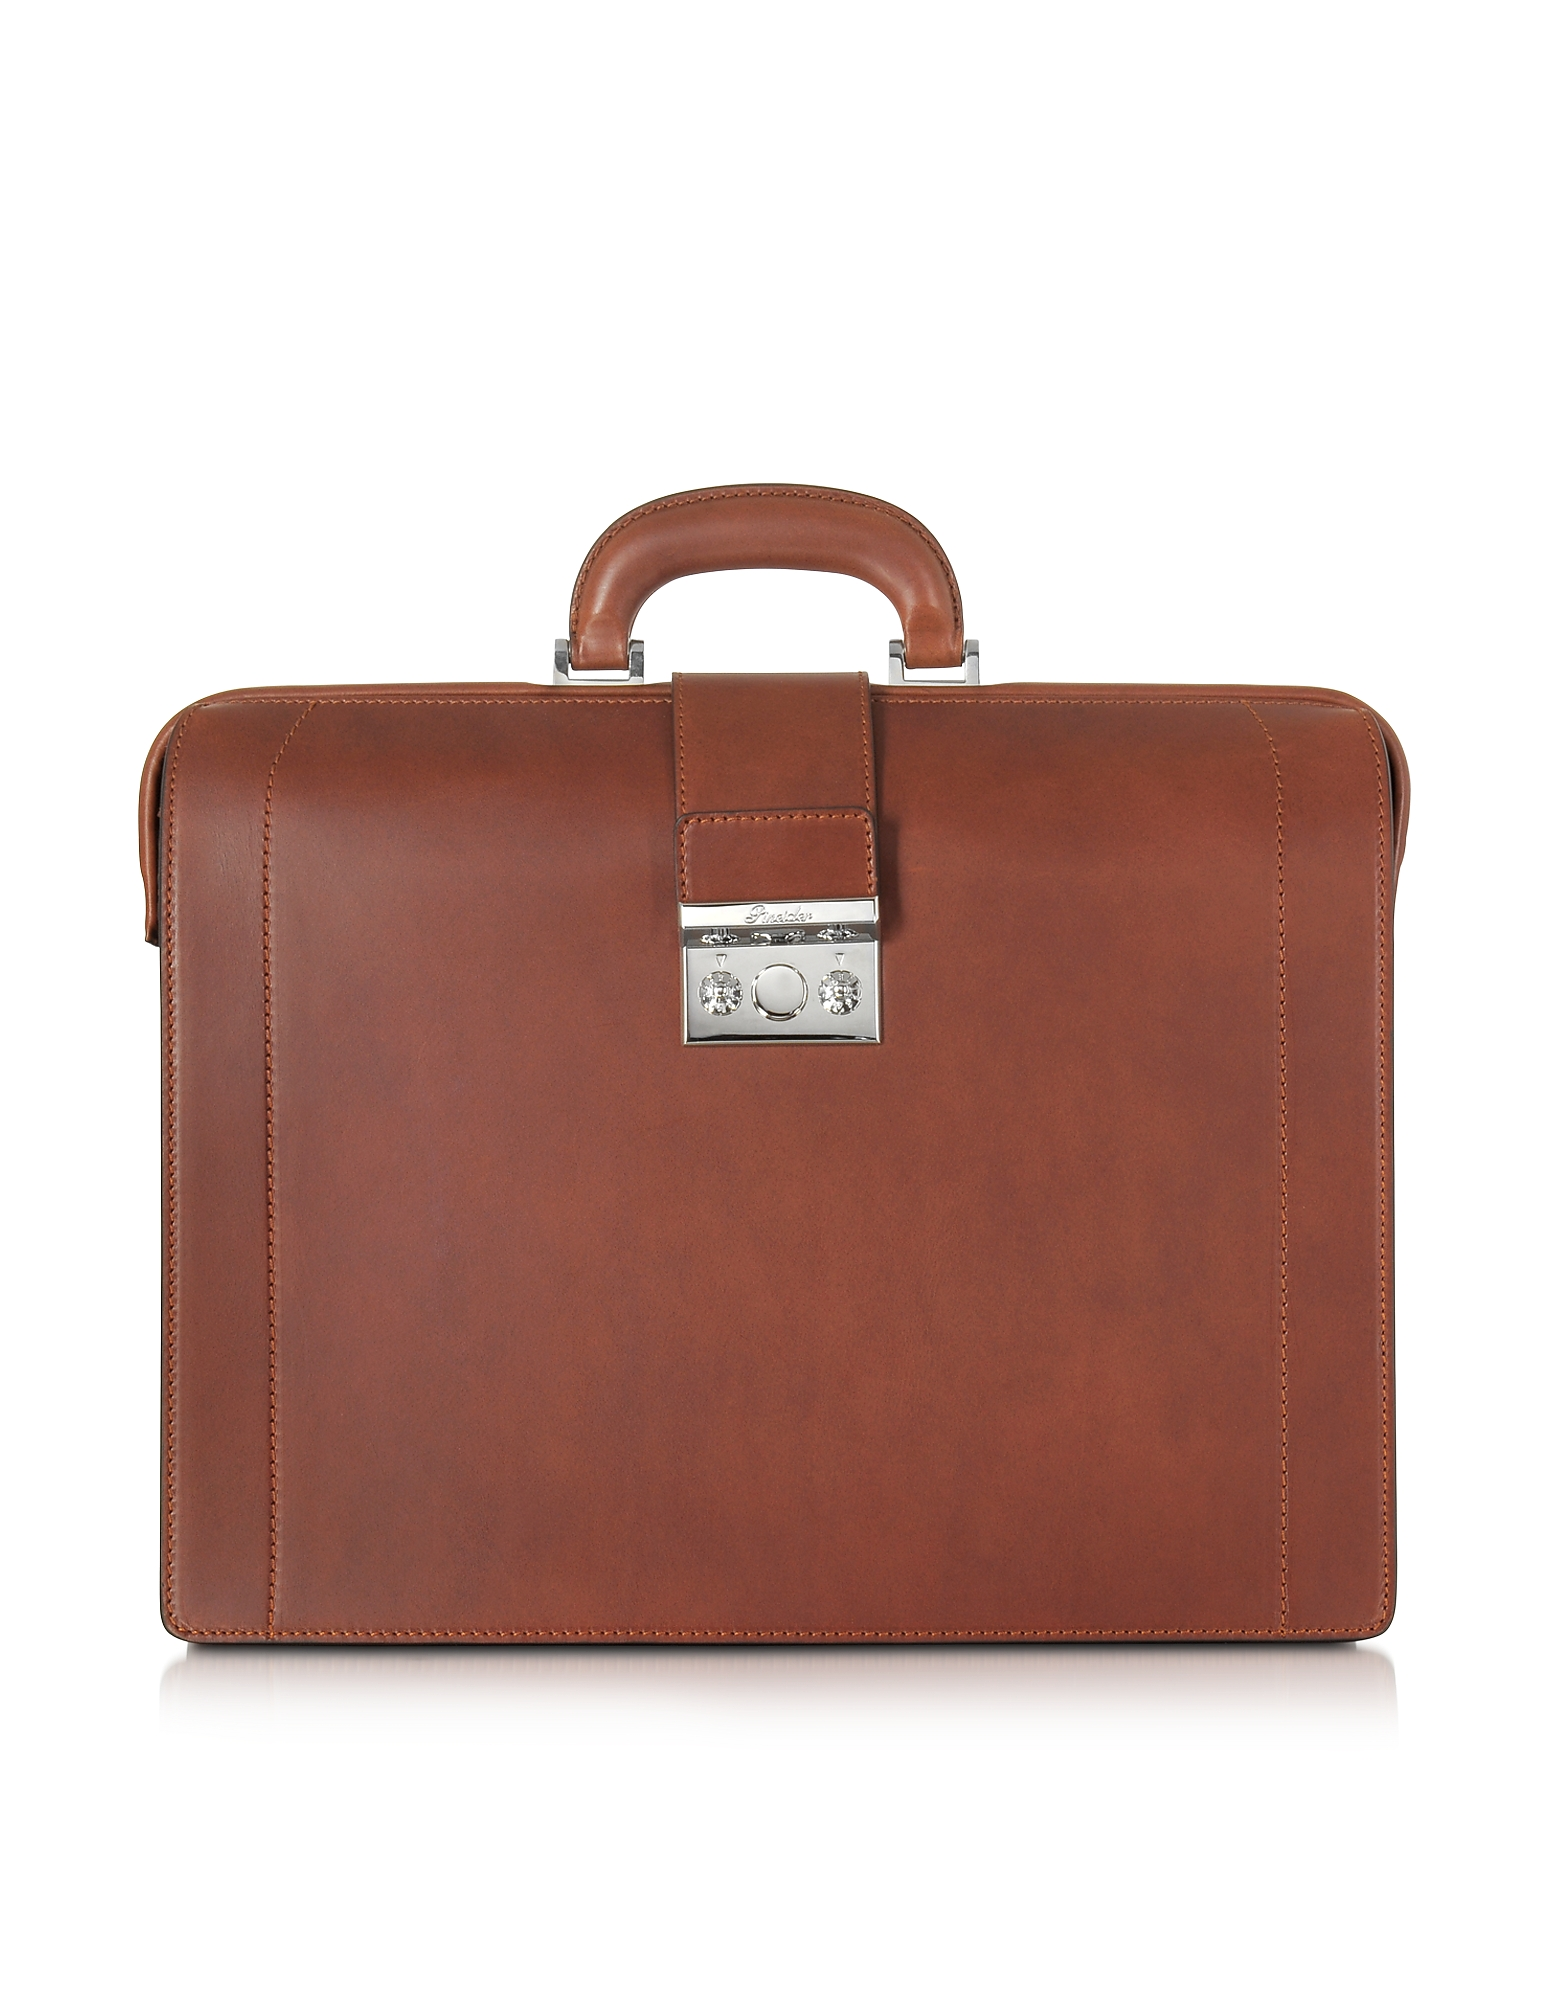 Pineider Briefcases, Medium Reddish Brown Leather Diplomatic Briefcase